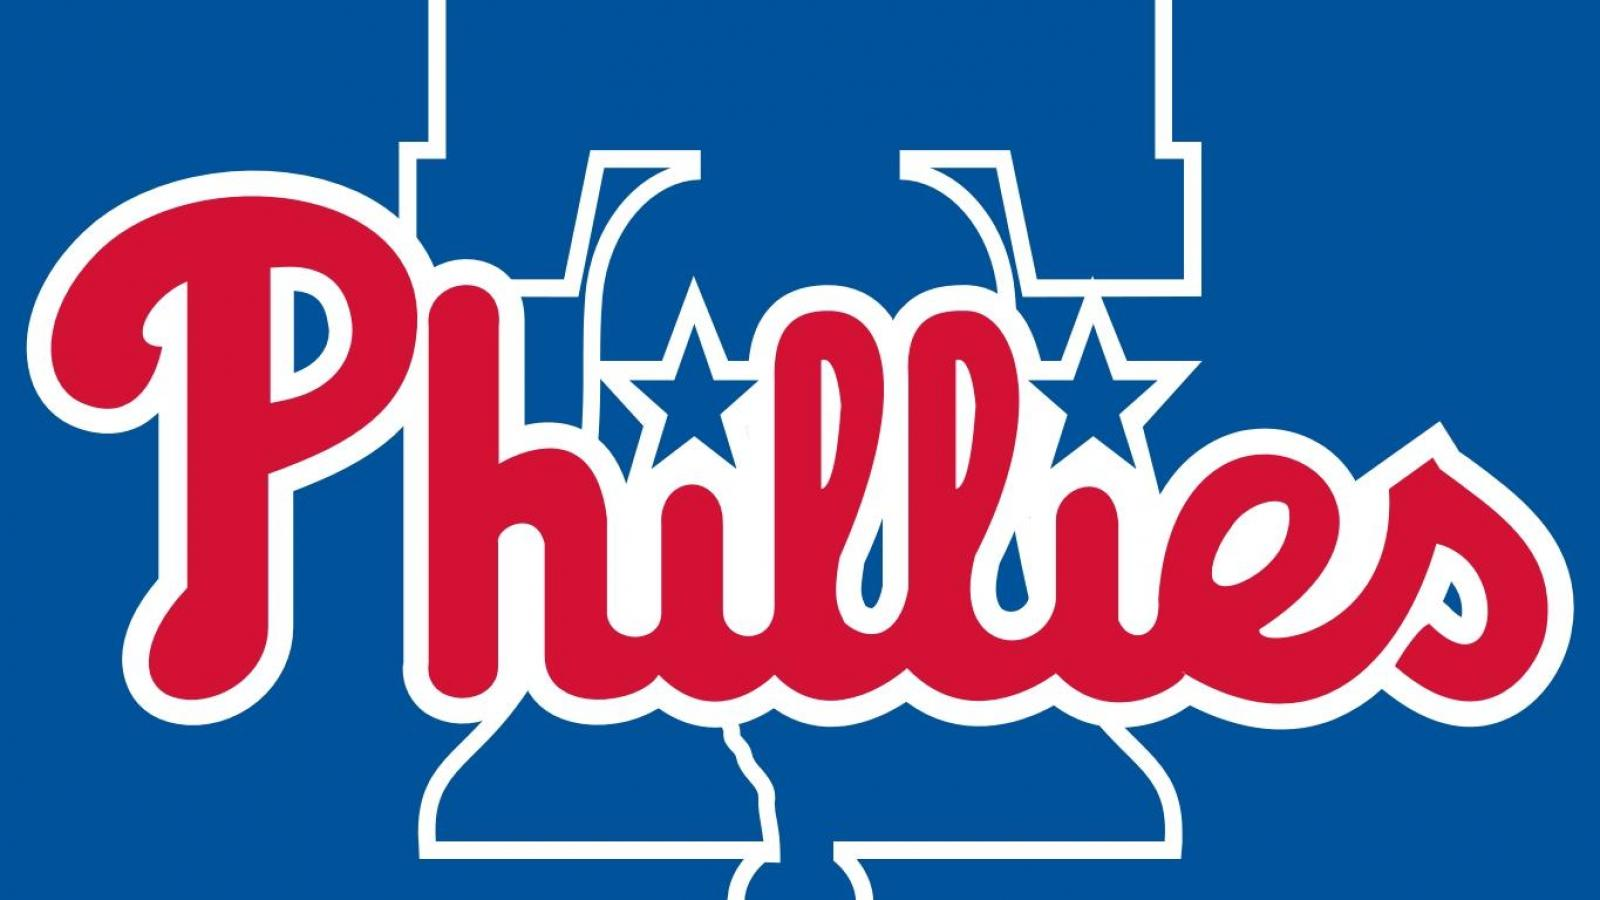 hqwallbasecom63282 philadelphia phillies logo liberty bell version 1600x900